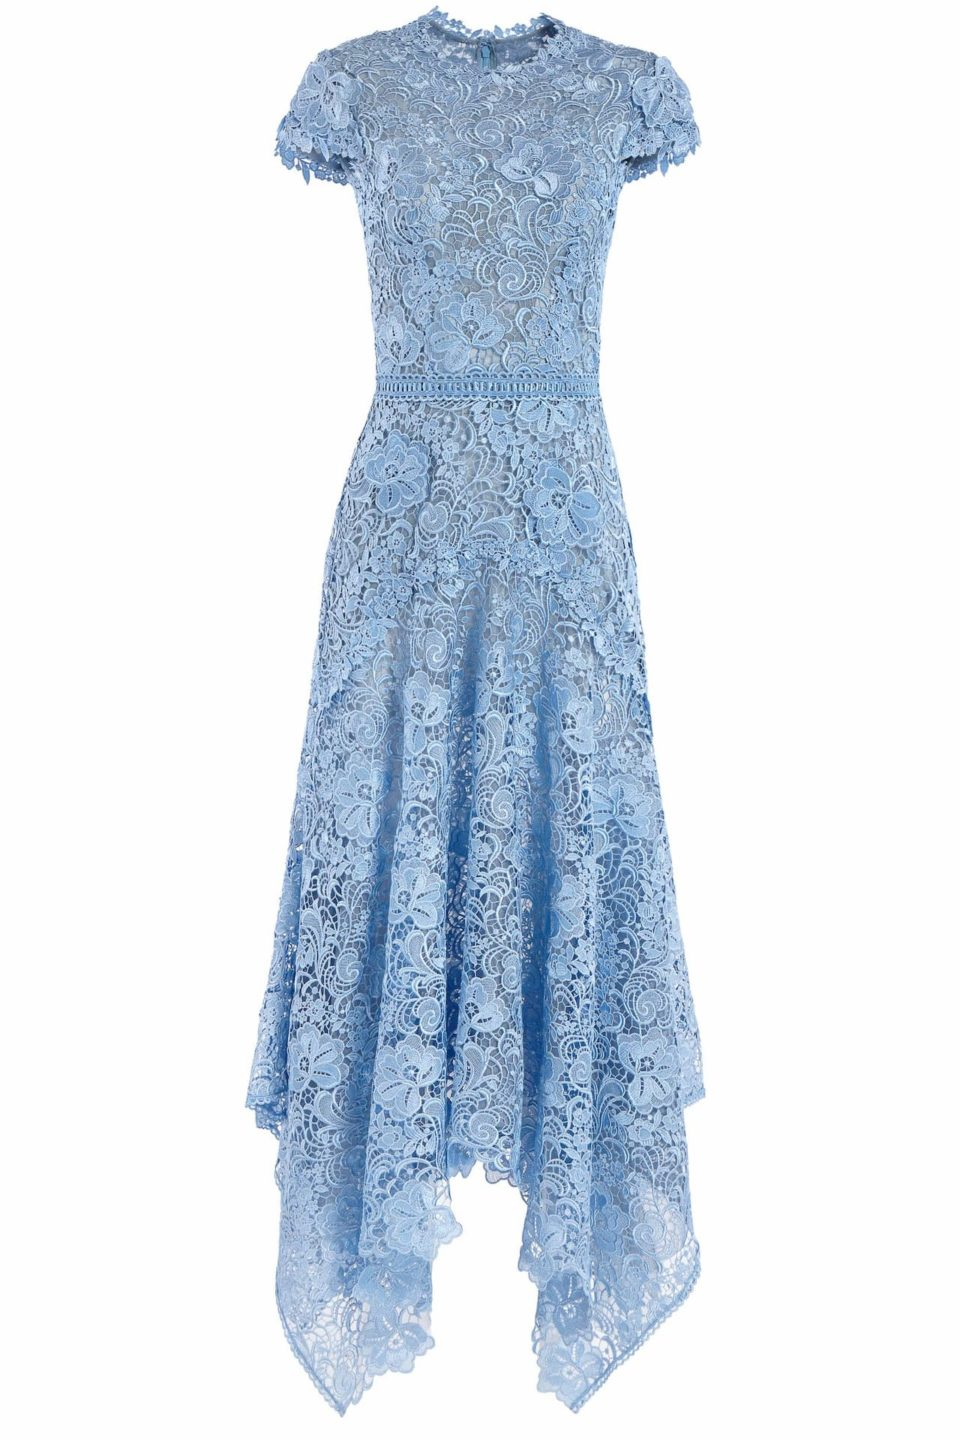 Clarie PR2045 Blue Guipure Lace Short-Sleeve Handkerchief Dress with 3D Lace Appliques